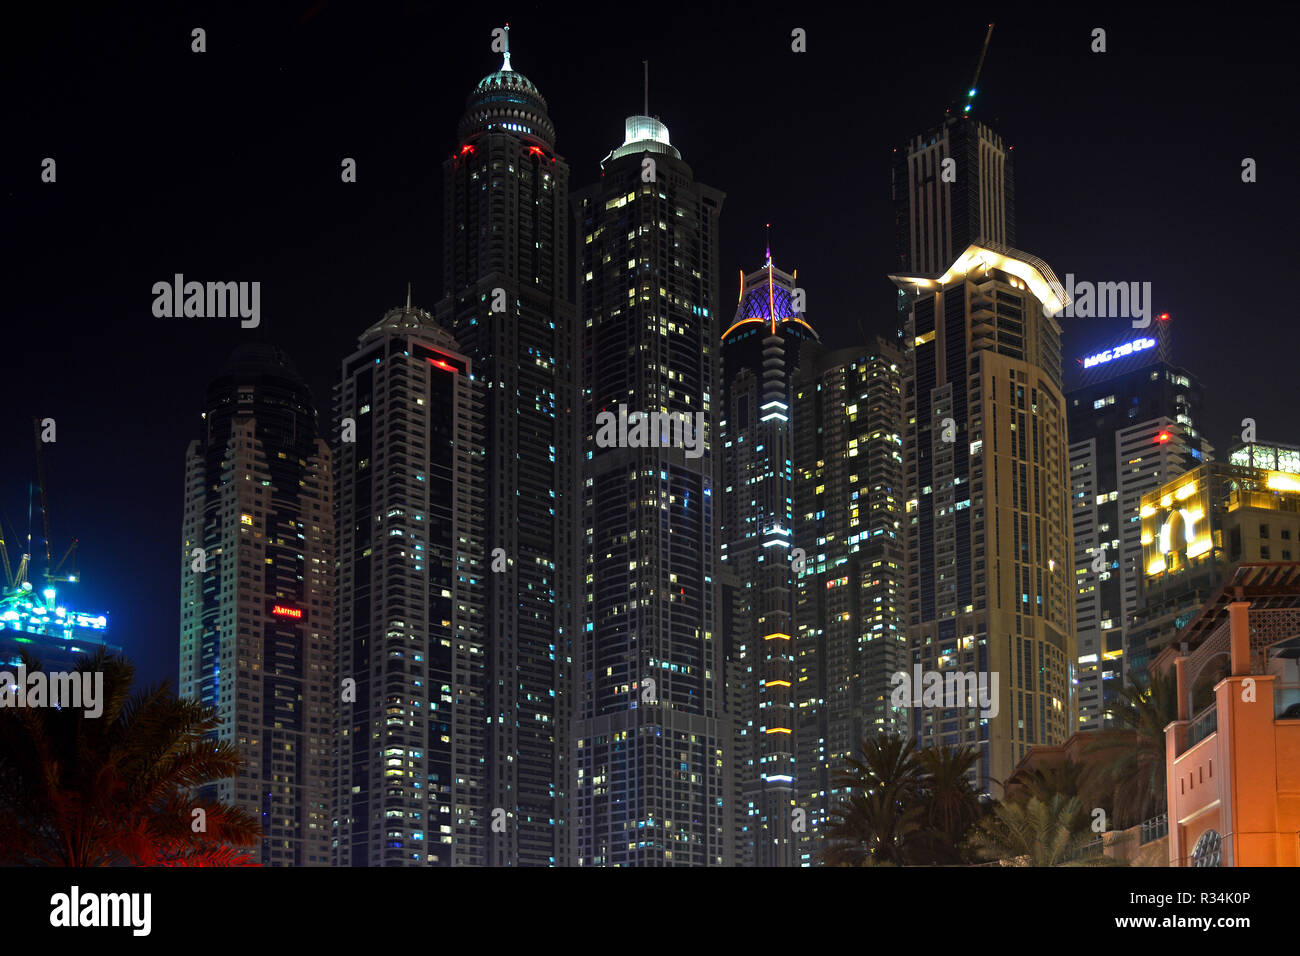 skyscrapers at night - Stock Image